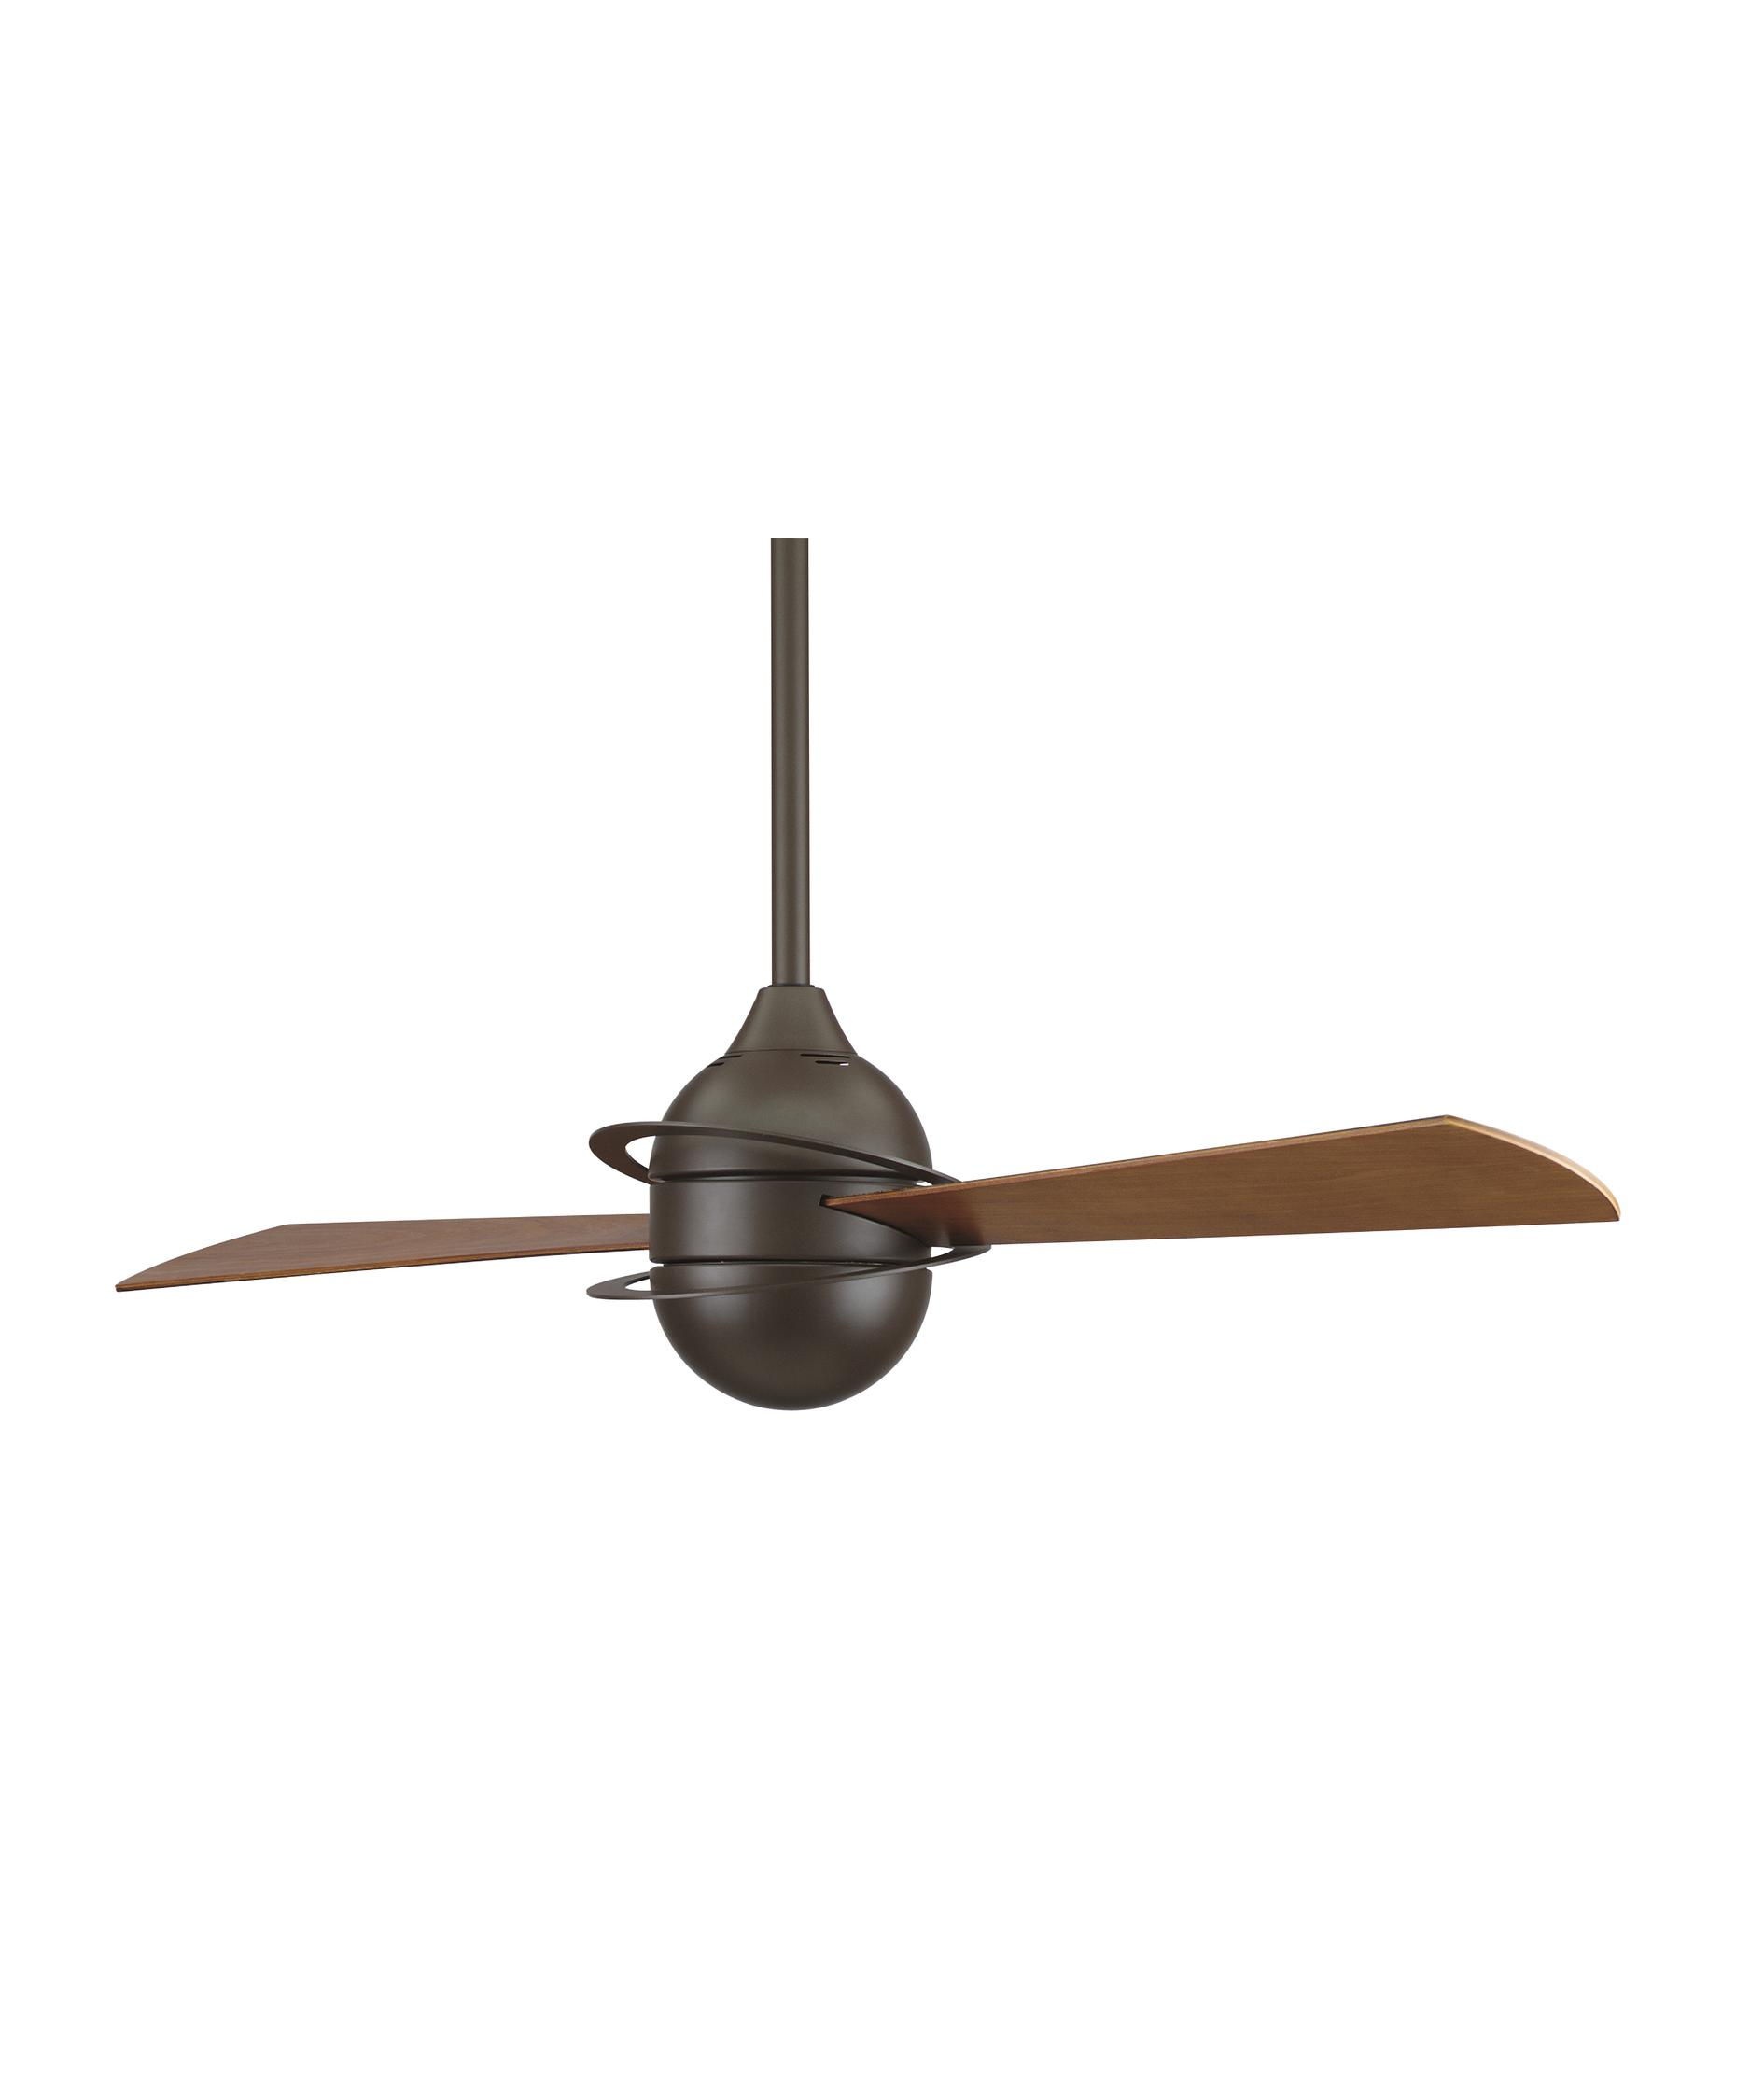 fanimation fp involution  inch  blade ceiling fan  capitol  - shown in oil rubbed bronze finish